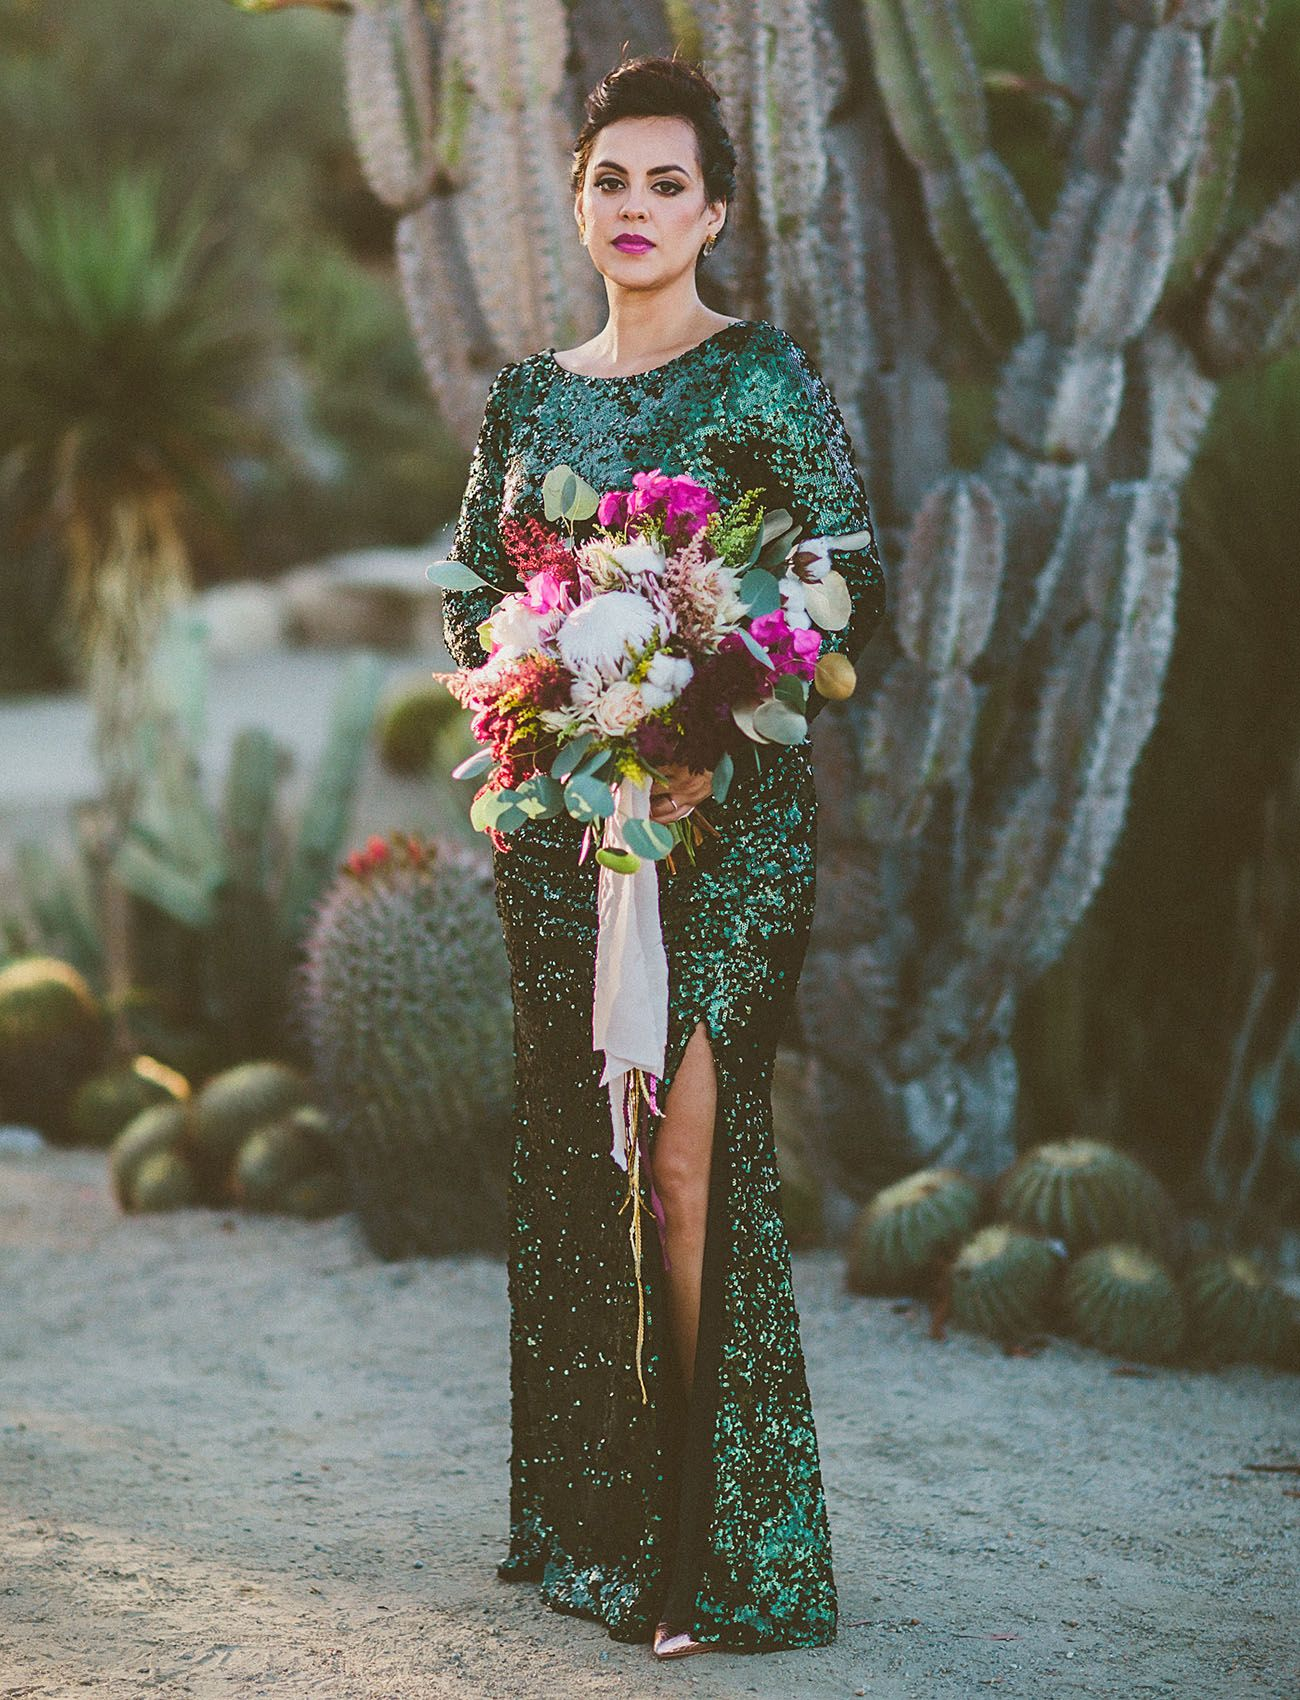 Desert Wedding Mid Century Hotel Reception Emerald Sequins Fuchsia Blooms And Gold Marbling Details